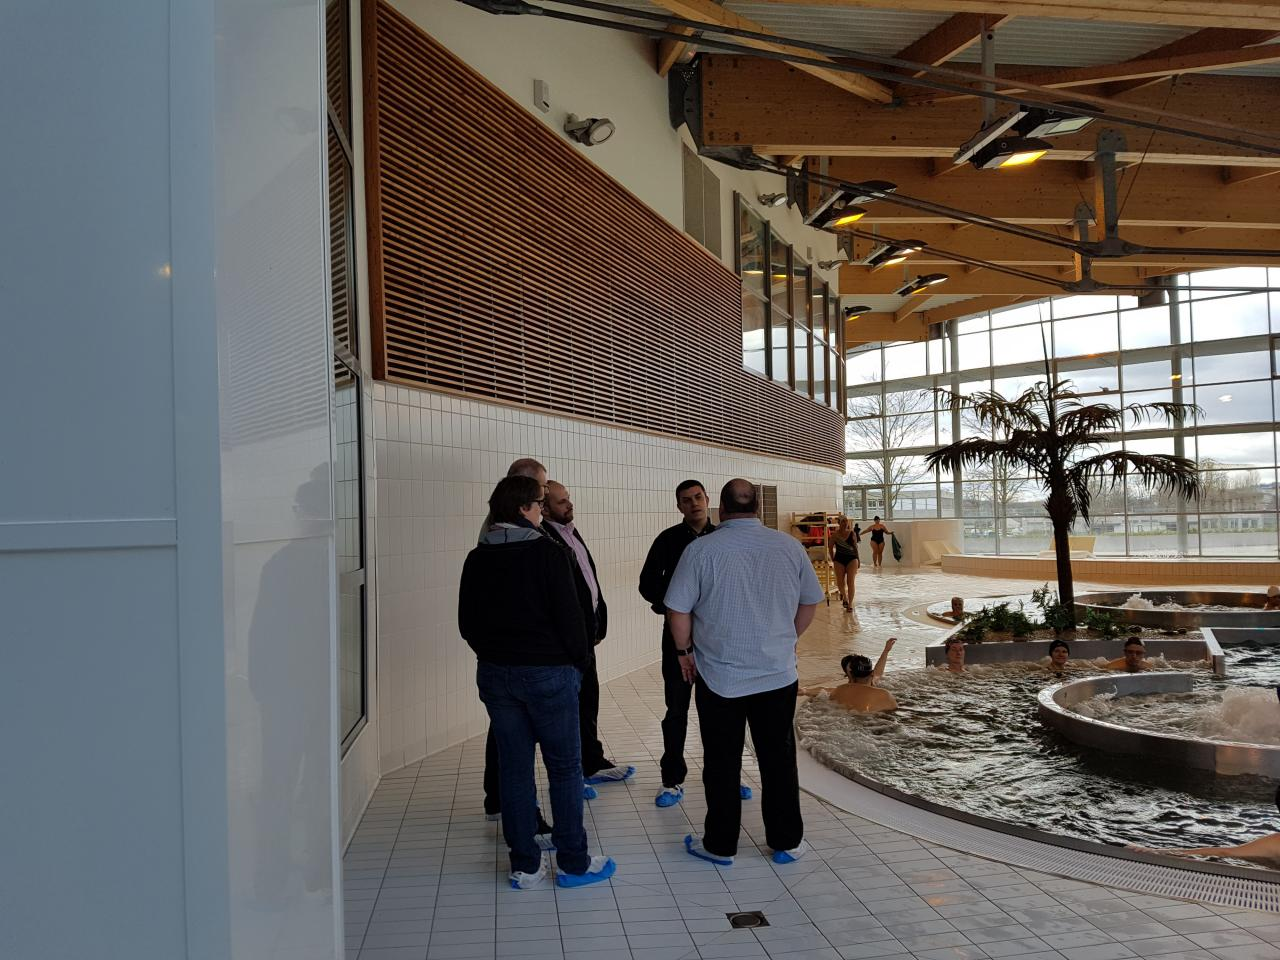 Visite de la piscine la vague soisy sous montmorency 28 for Piscine soisy sous montmorency